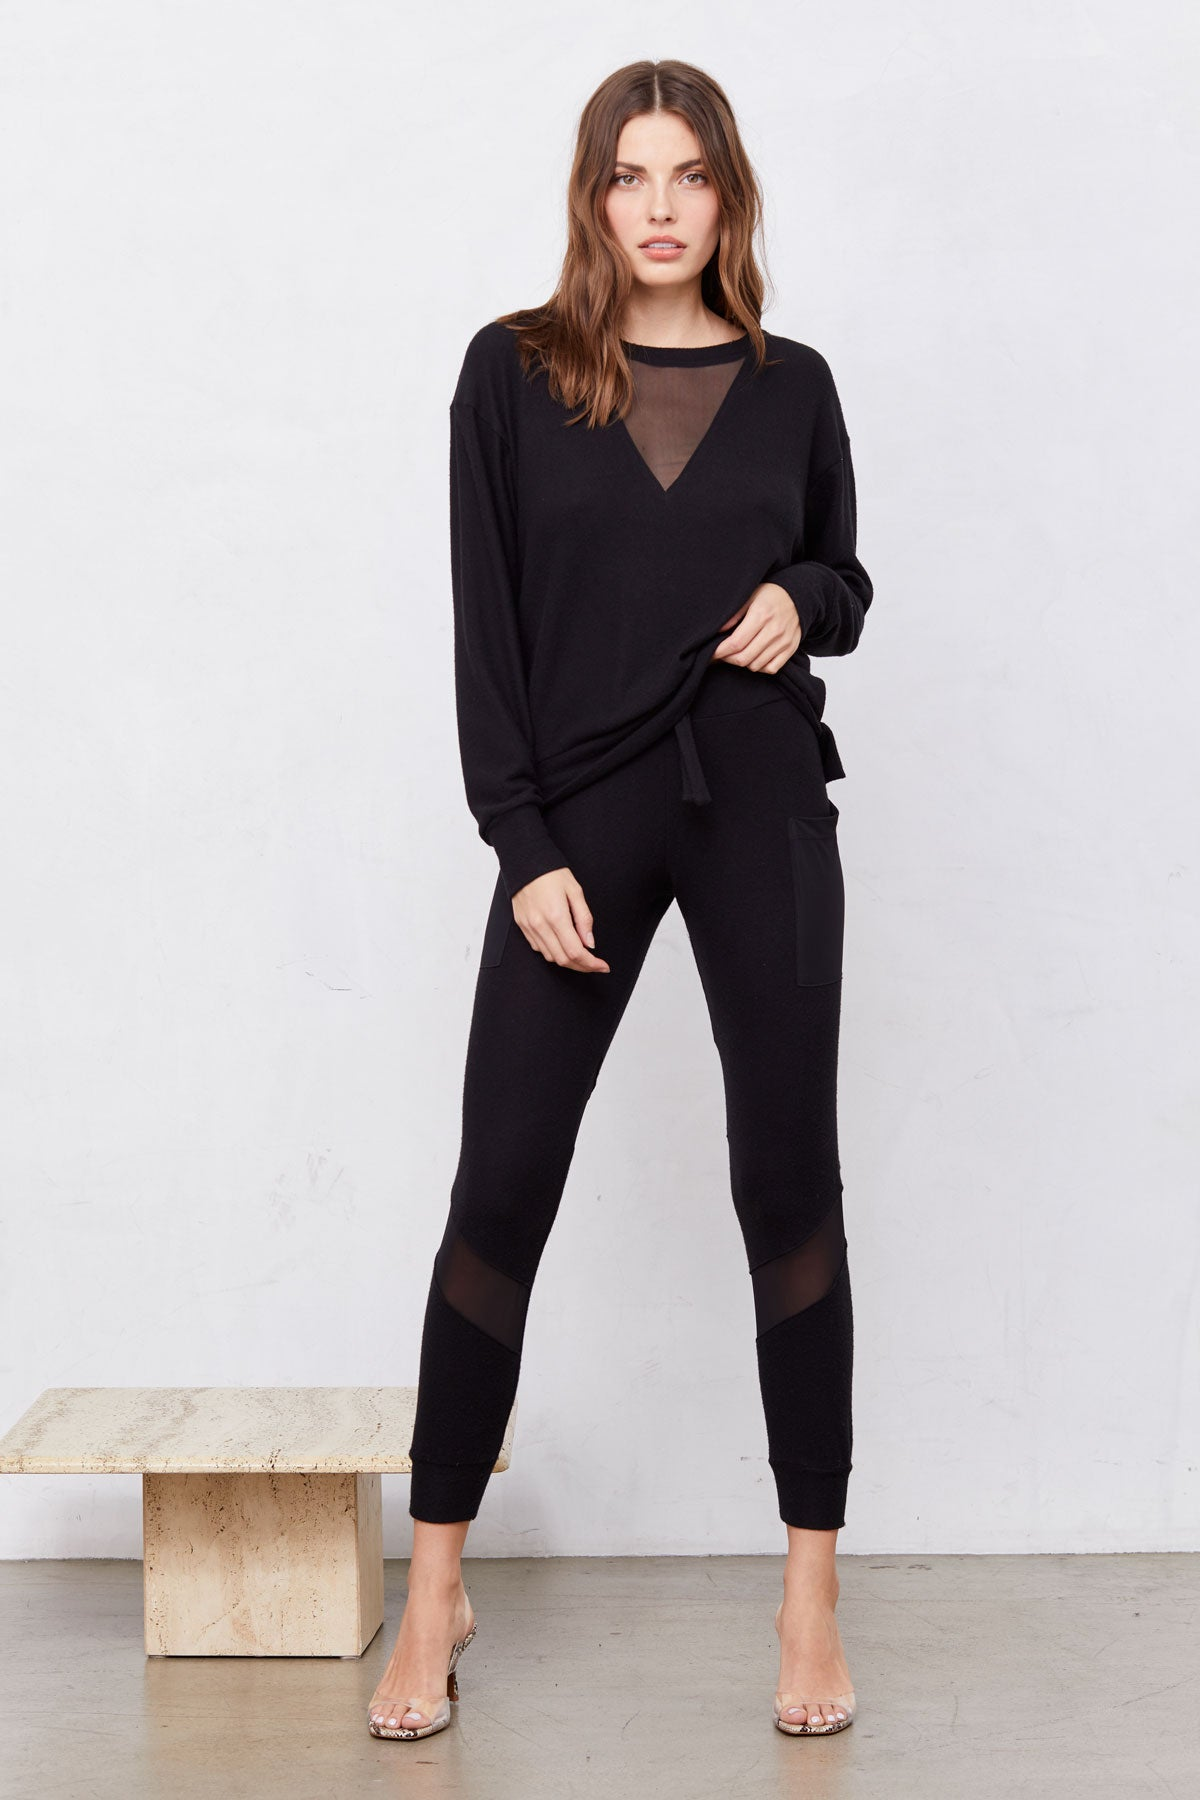 LNA Brushed Mesh Pant with Sheer Detail